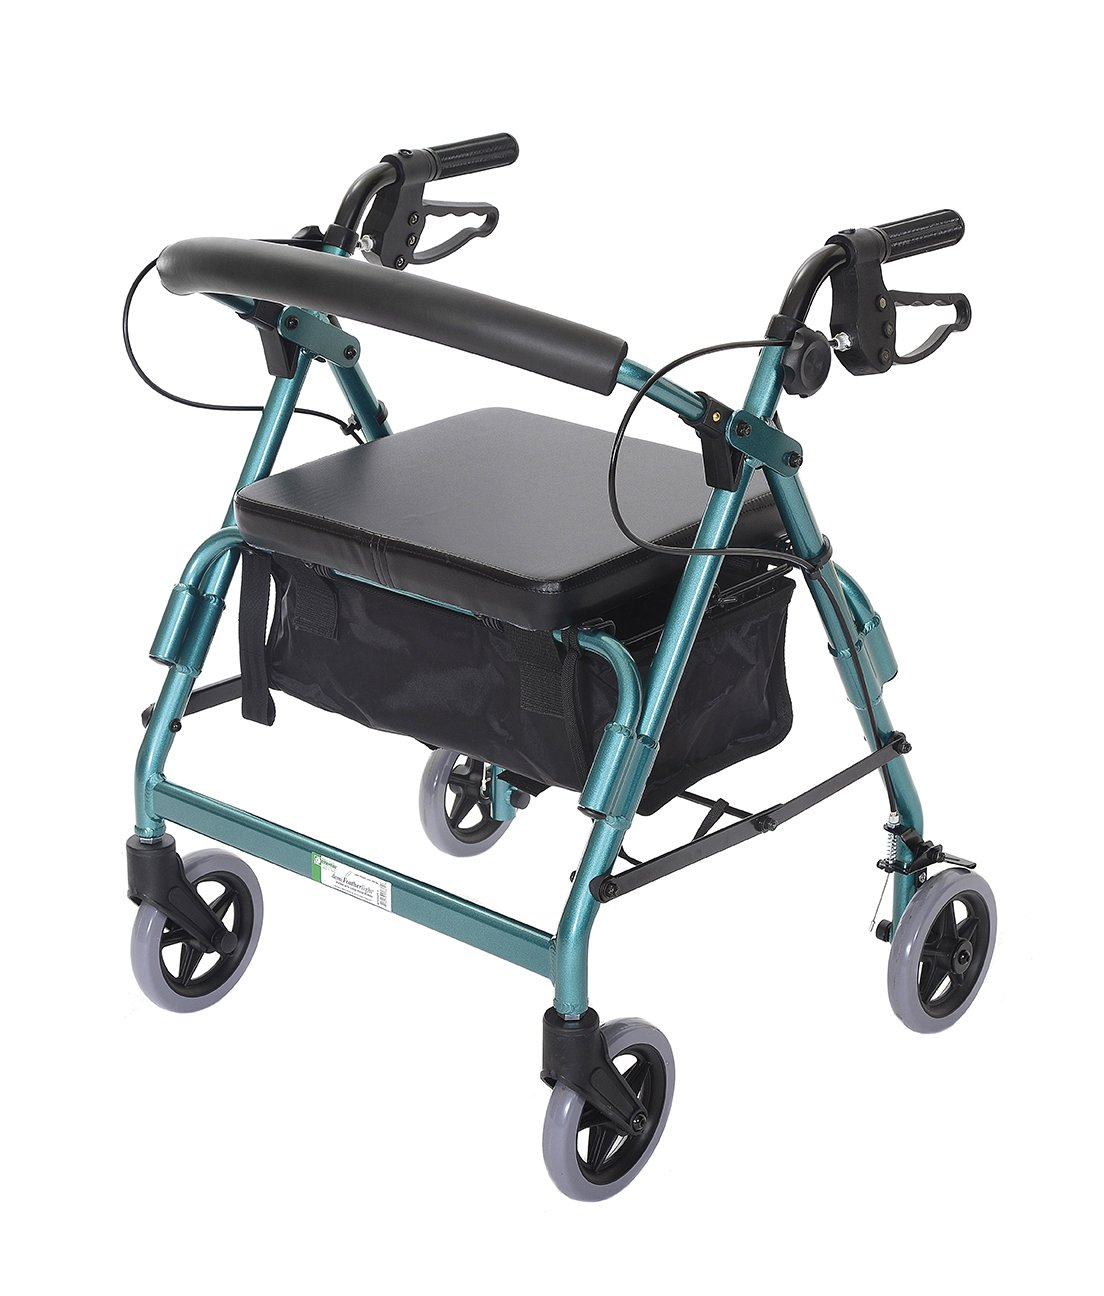 Essential Medical Supply W1650t-1 Feather light 4 Wheel Walker with loop Hand Brakes, Teal